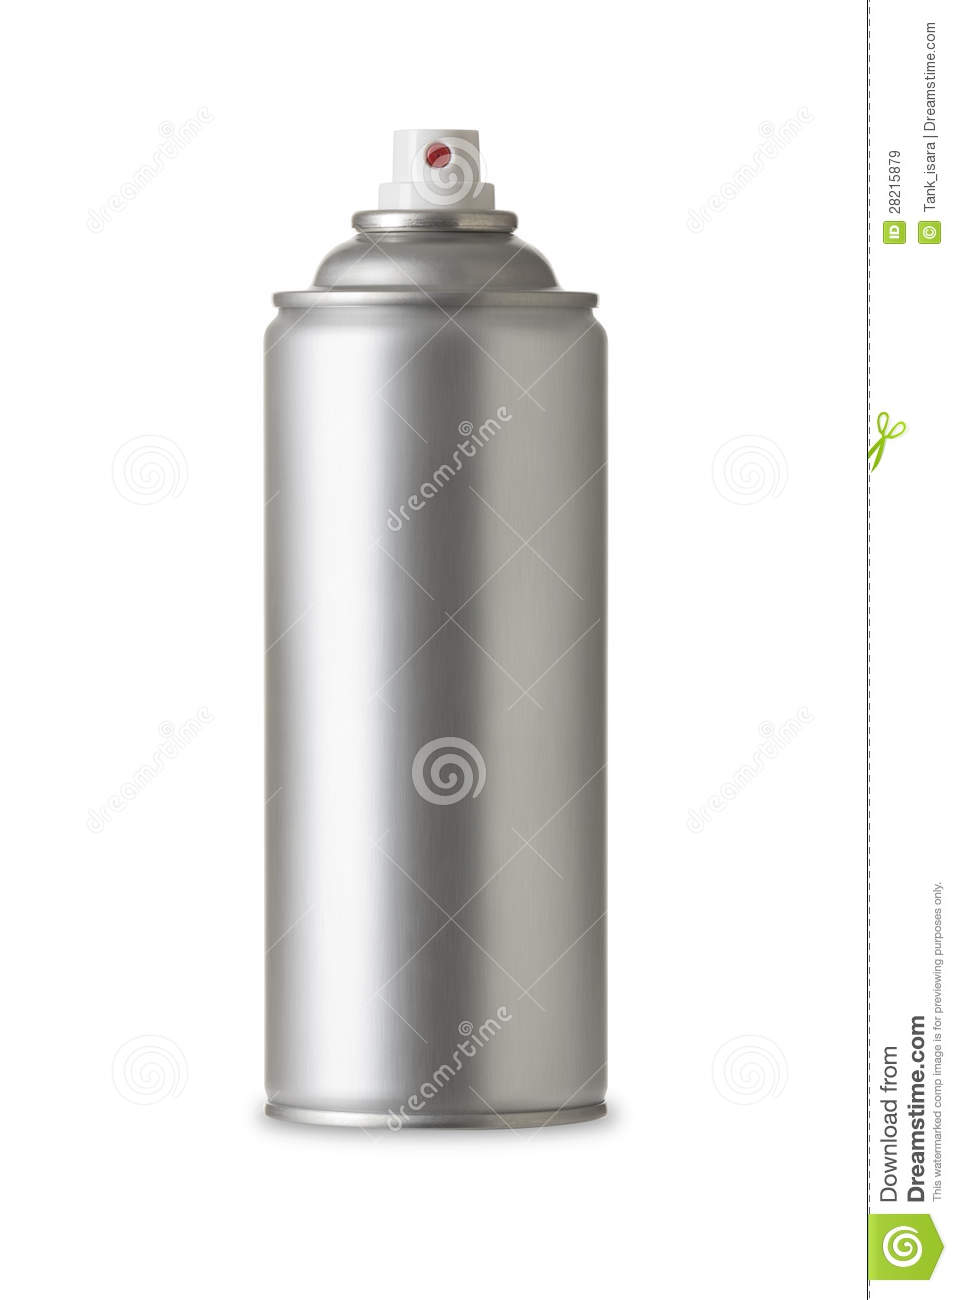 Blank aluminum spray paint can realistic photo image stock image image 28215879 Paint with spray can